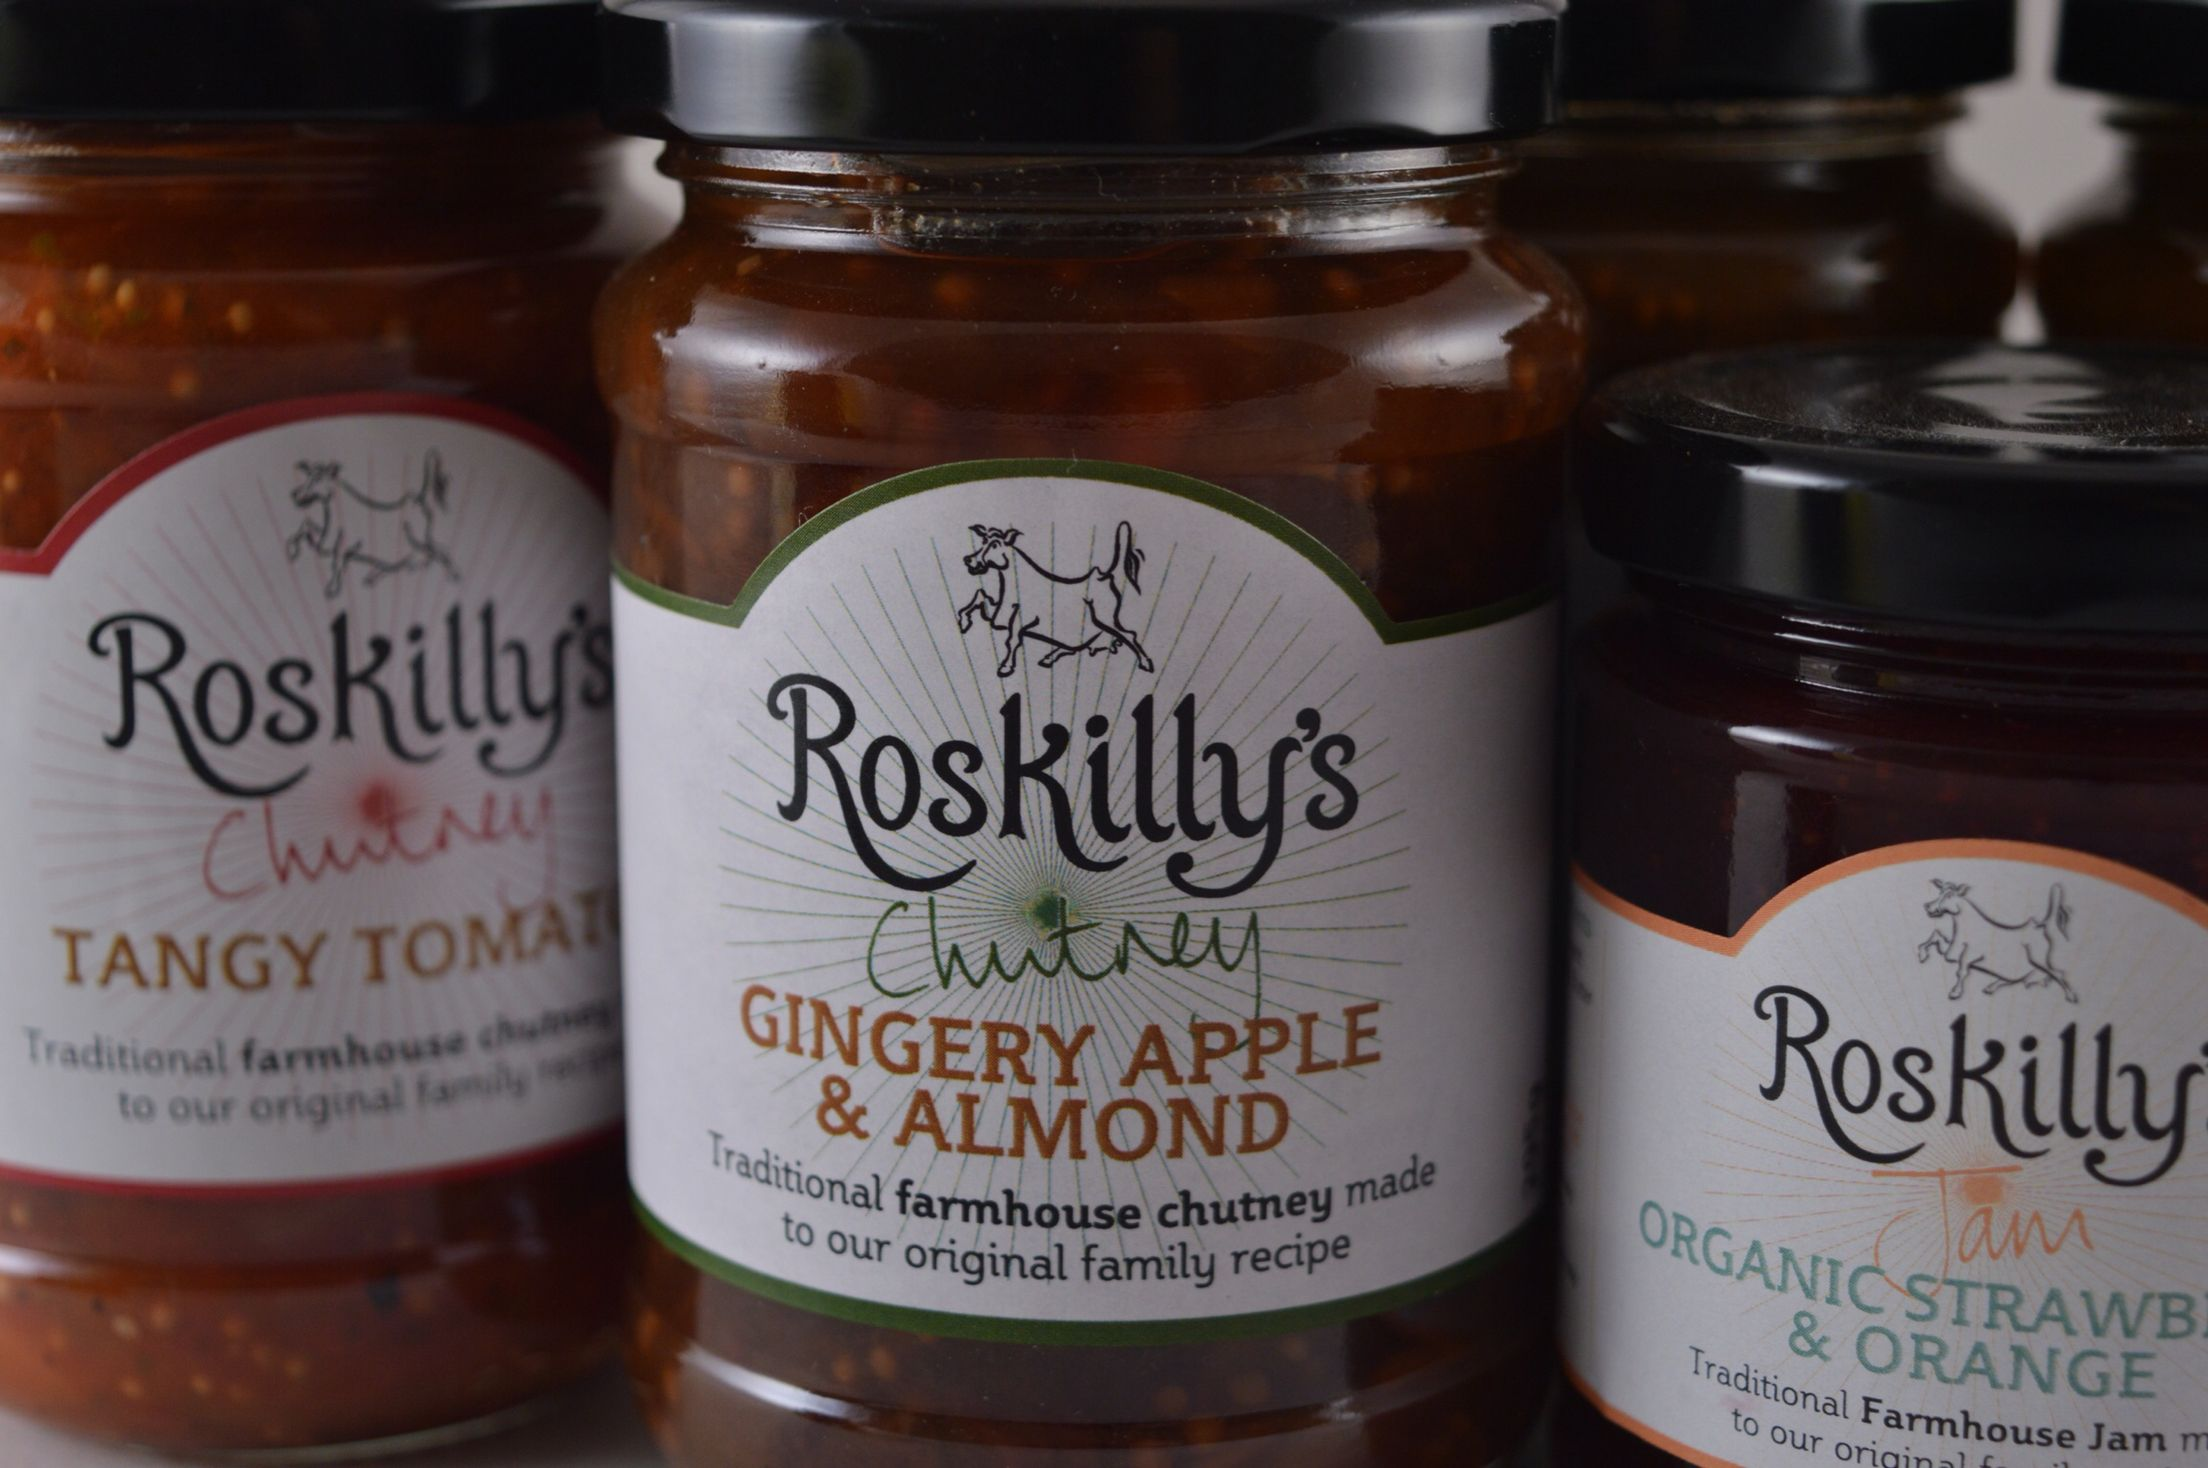 Love Chutney? Then check out this divine chutney from Roskilly's.